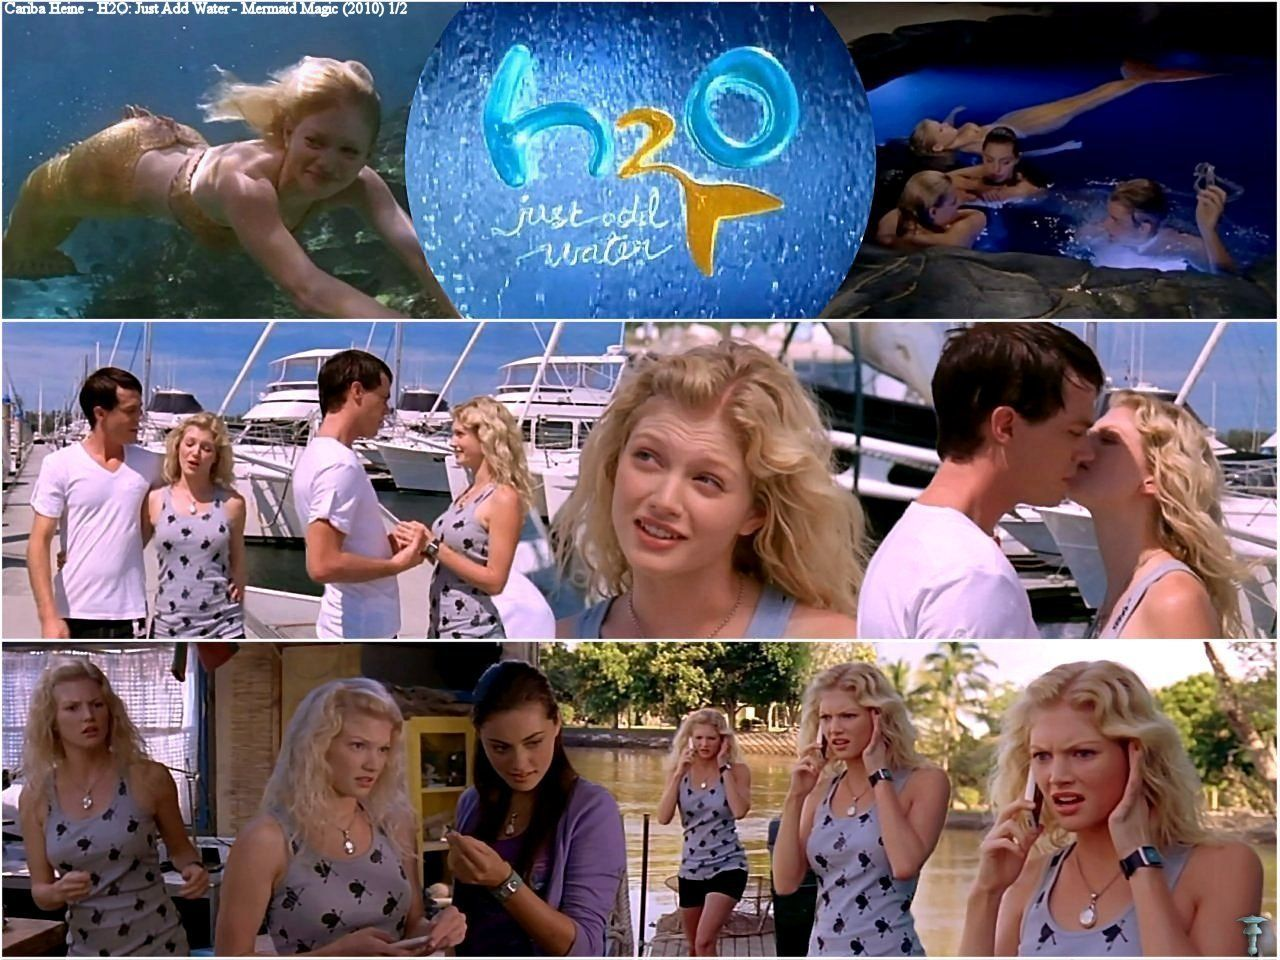 Mako island pictures mako mermaids h2o just add water for H20 just add water full movie